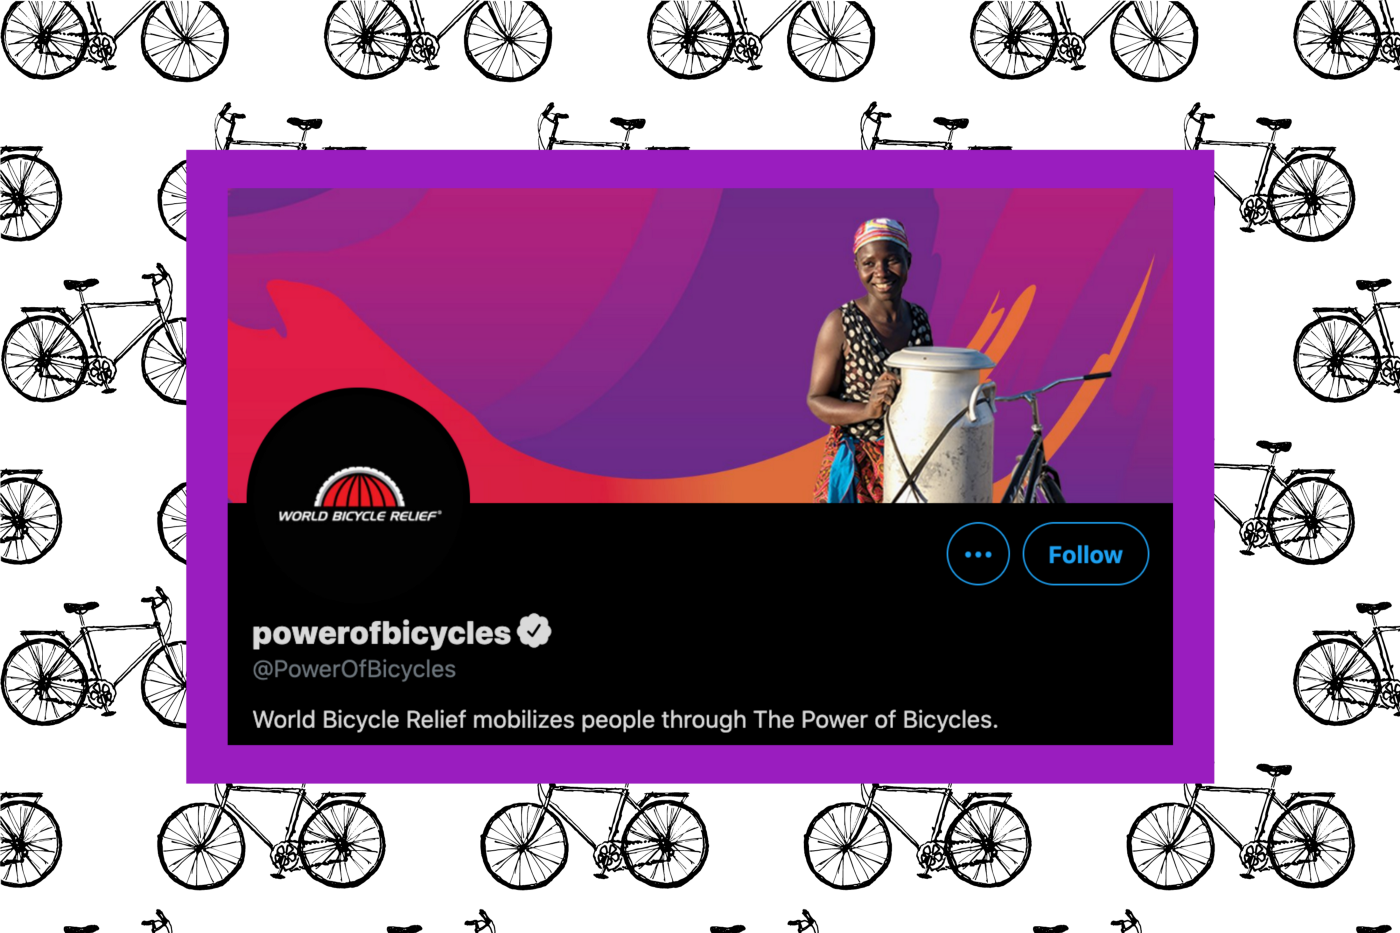 Power of Bicycles' Twitter page.